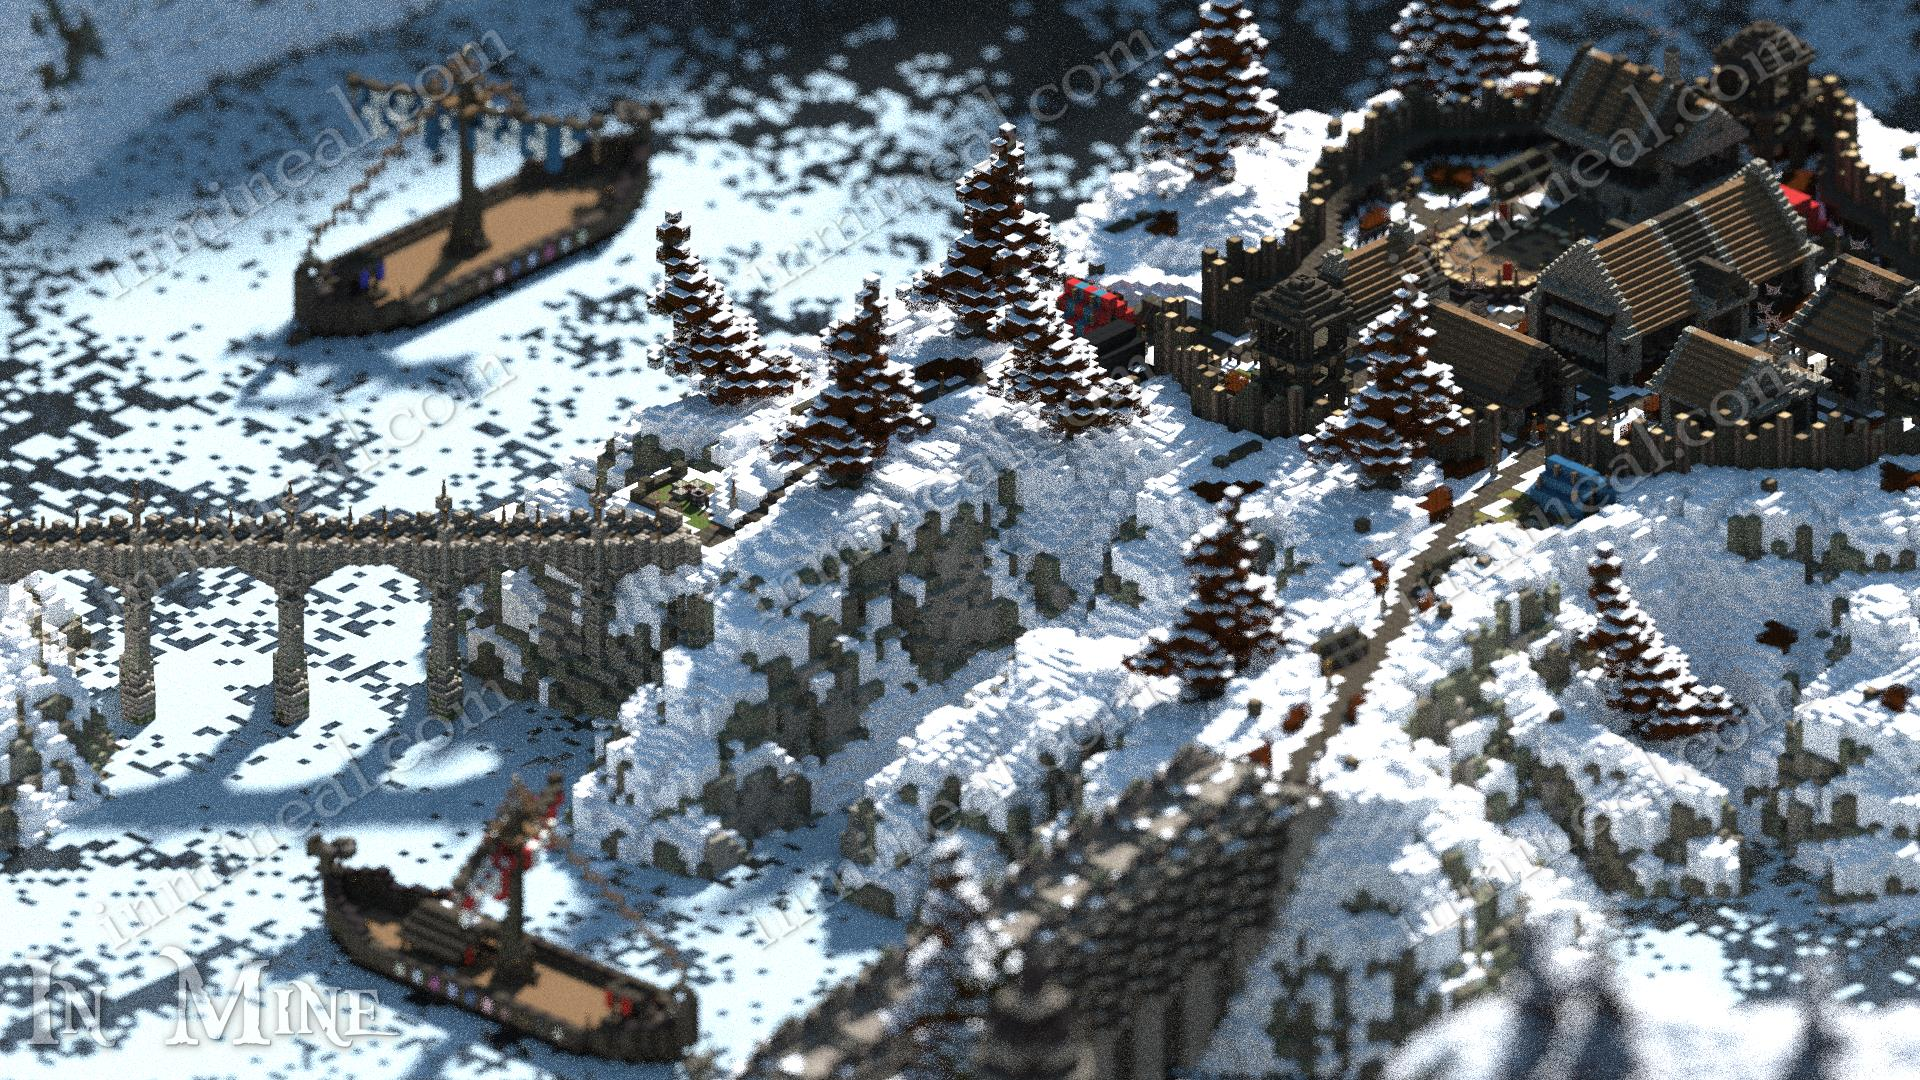 Fantasy Viking Village - Spawn